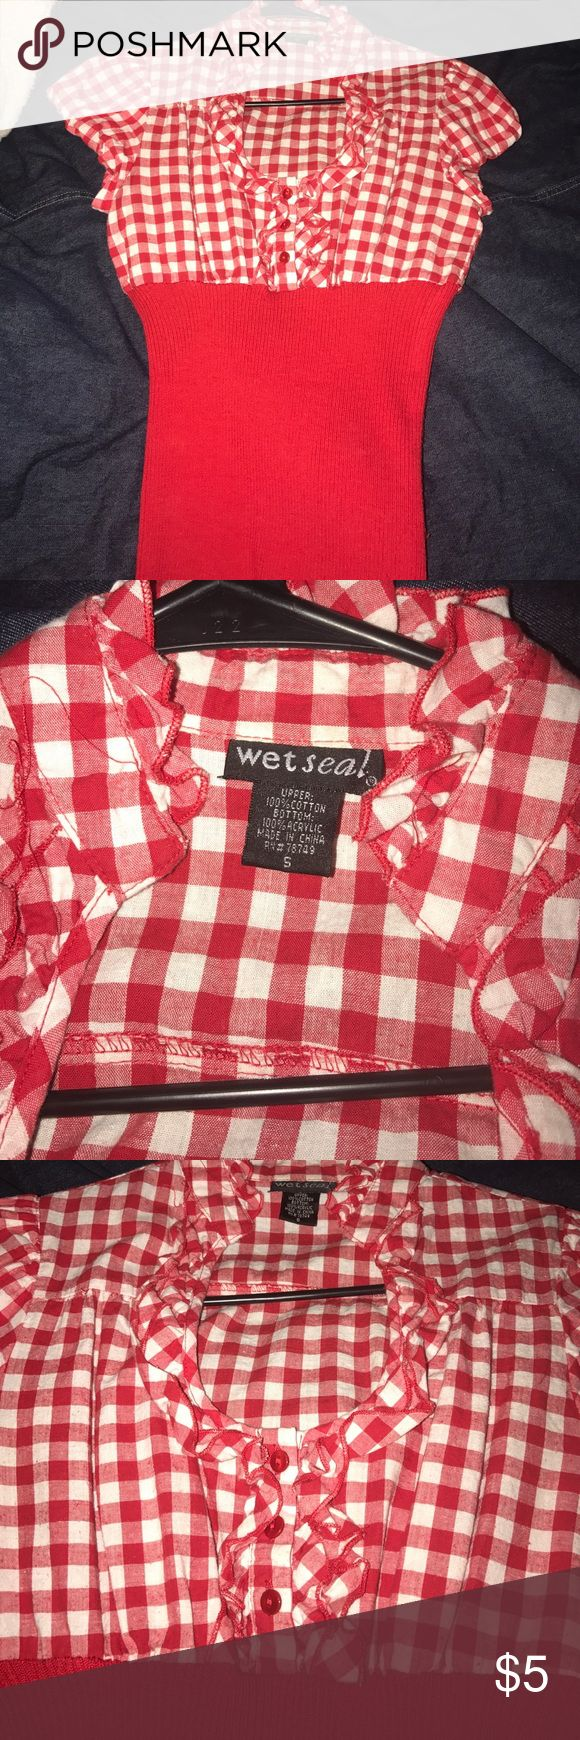 ❤Super Cute Red checker plaid shirt! ❤ size S ❤Super Cute Red checker plaid shirt! ❤ wet seal size S, good condition but does have a few imperfections (shown in last pic) still super cute!! Wet Seal Tops